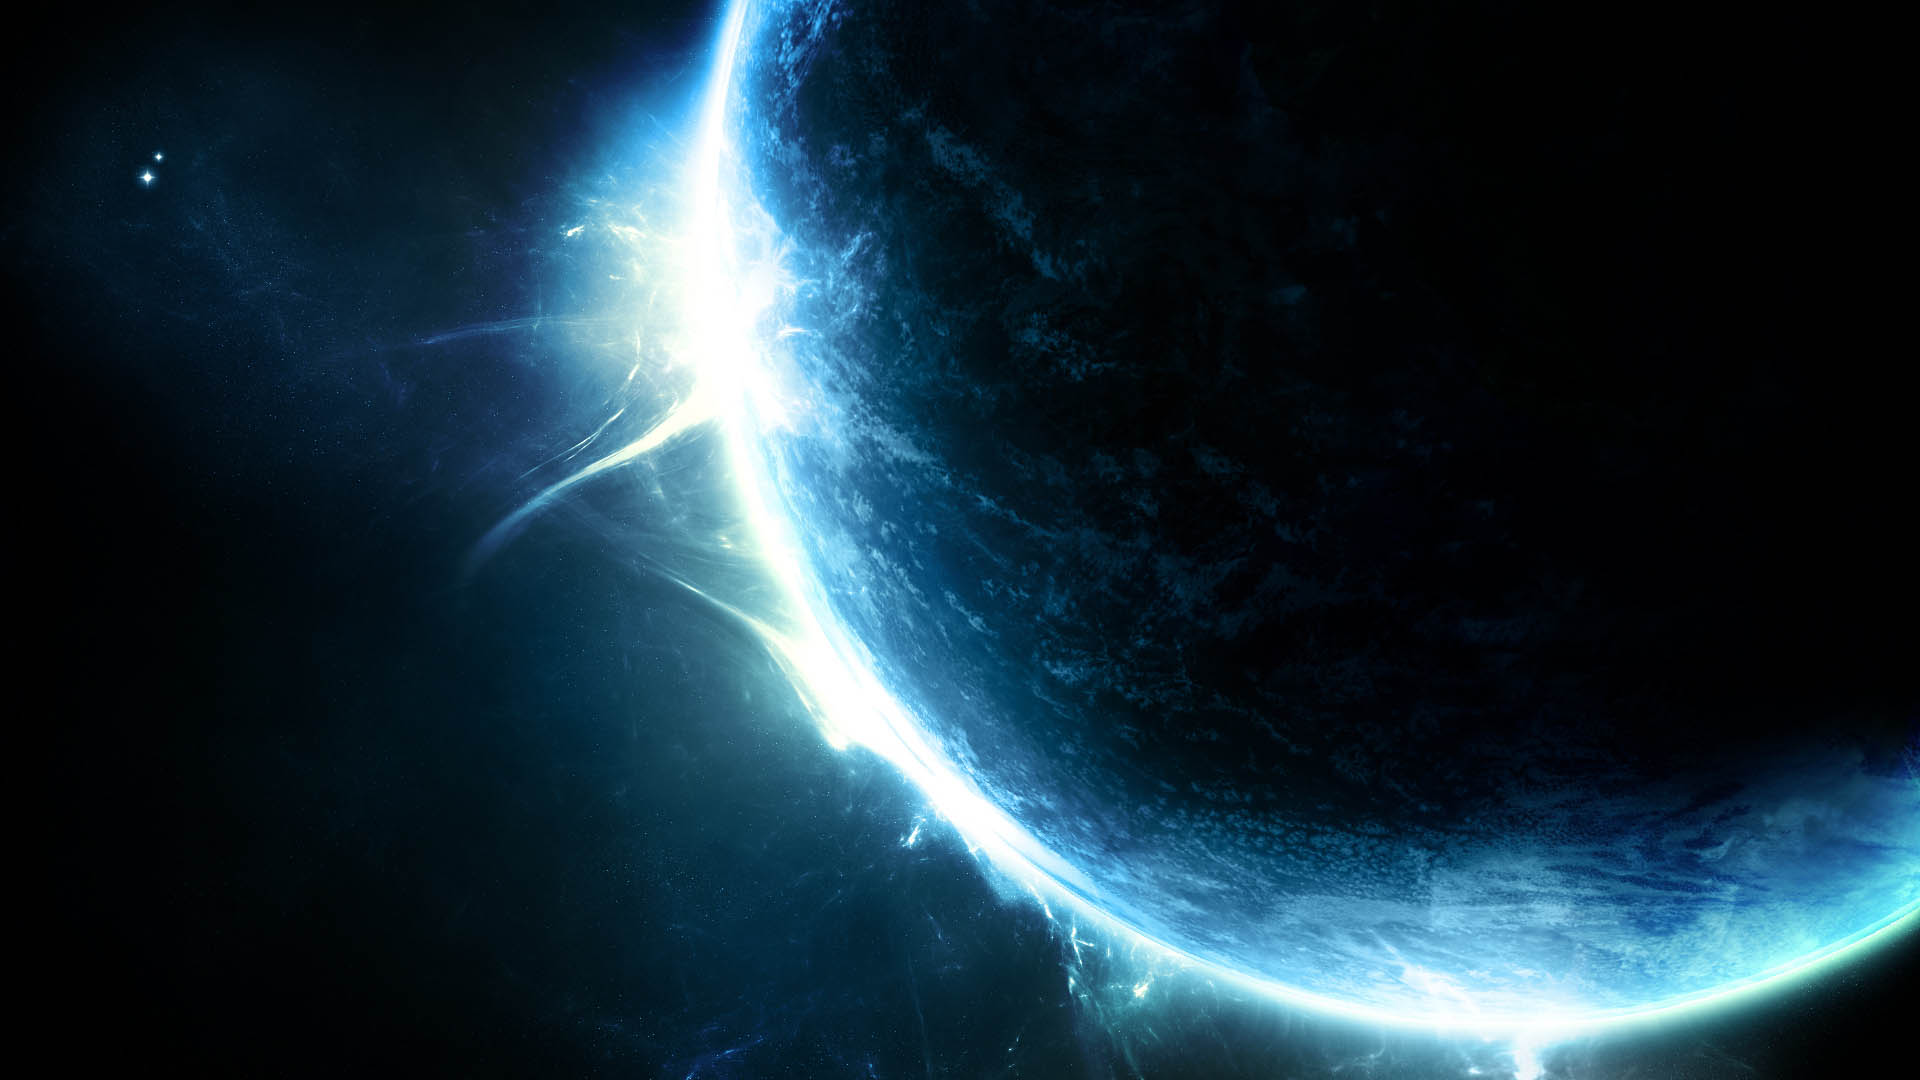 Space Wallpapers Pack 2 1920x1080